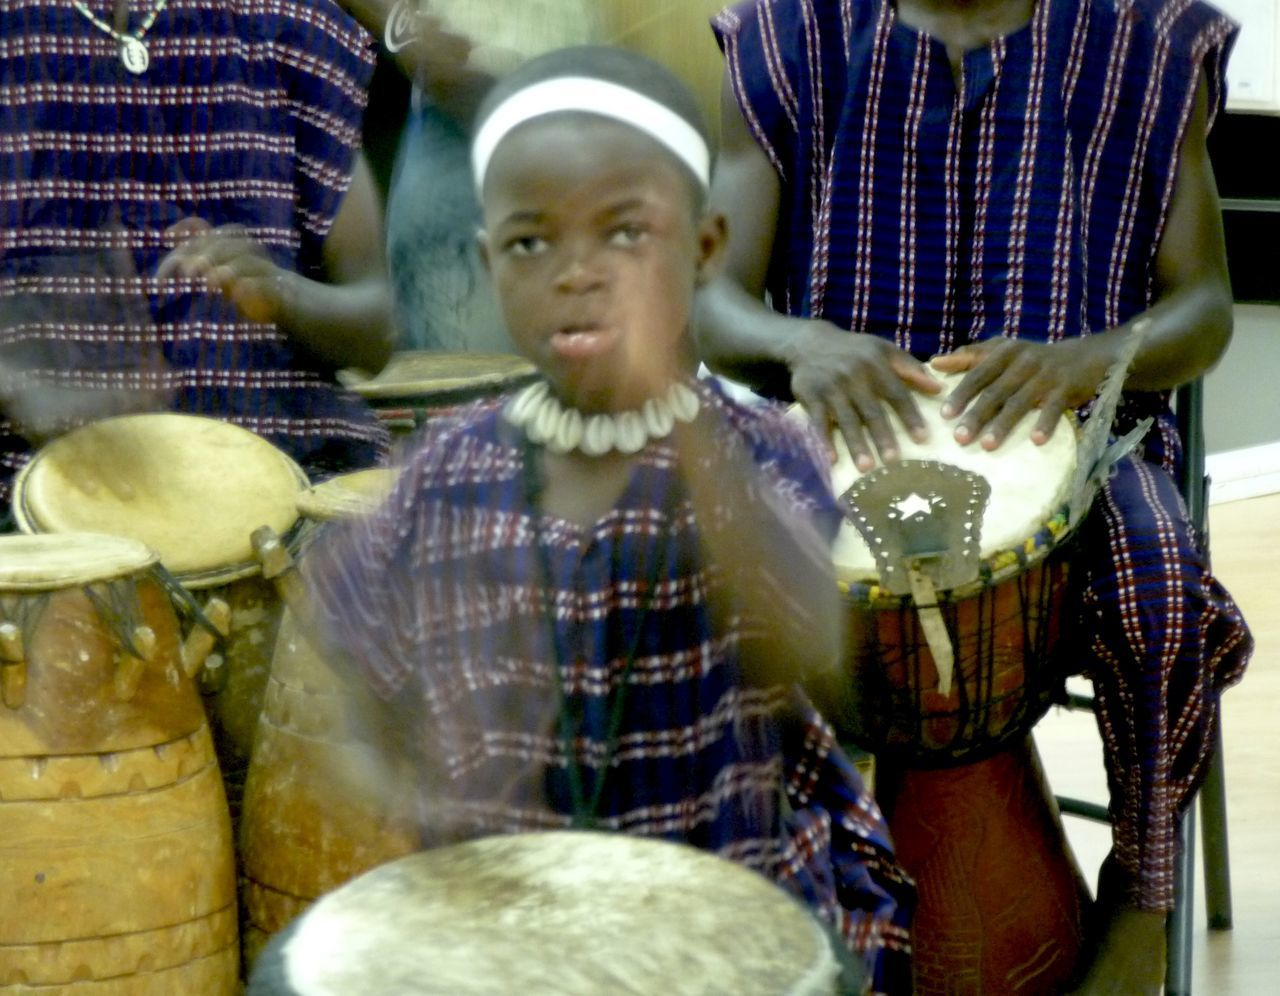 Africa African Boy Cultures Developing Country Drum Drummer Drummers Drumming Drumming Boy Ghana Heritage Indoors  Music Musician People Performance Real People Traditional Traditional Clothing Traditional Culture Traditional Dancing Tribe